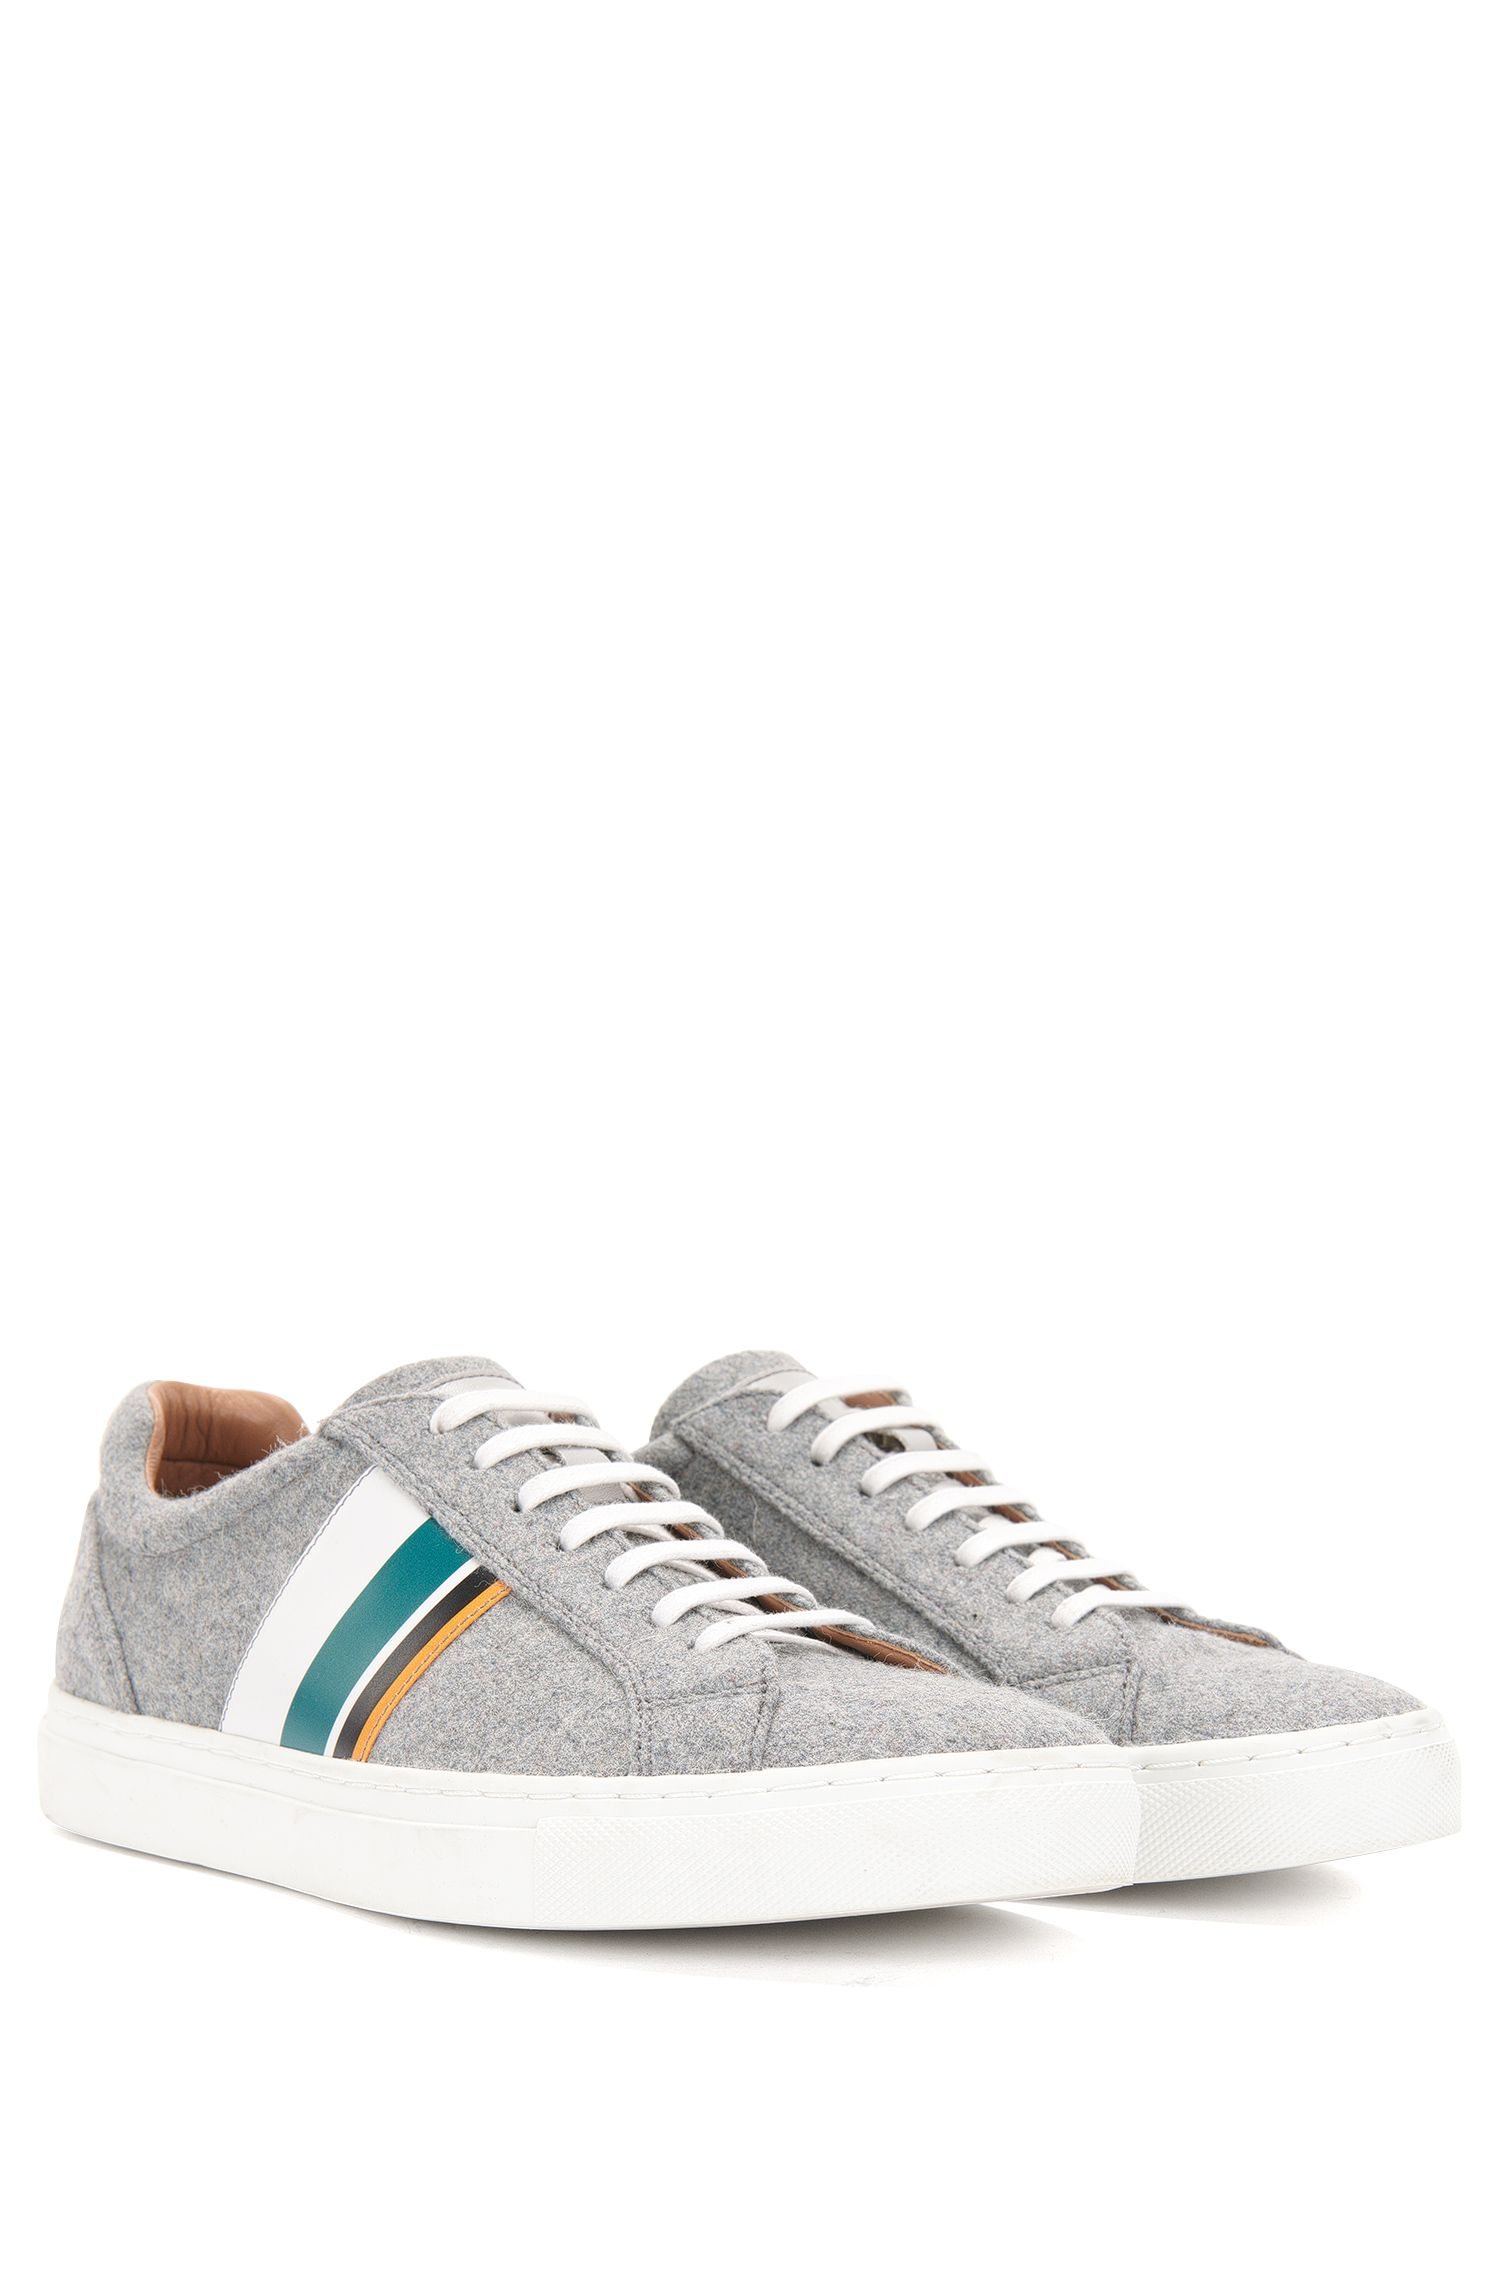 'Low Cut LB' | Wool Calfskin Sneakers